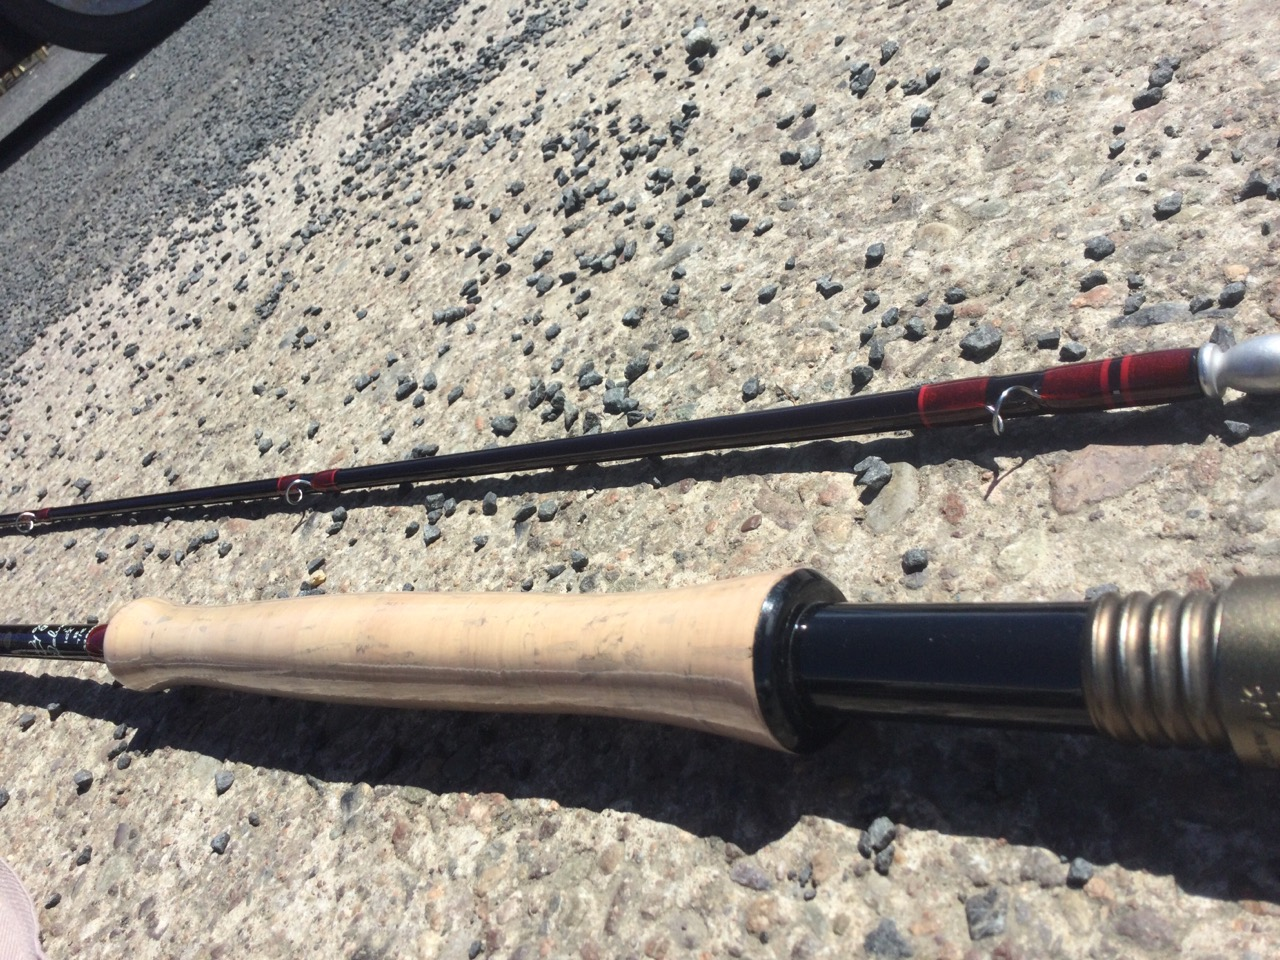 A new Hardy Deluxe graphite 10ft 6in two-piece fly rod, with sleeve. - Image 3 of 3